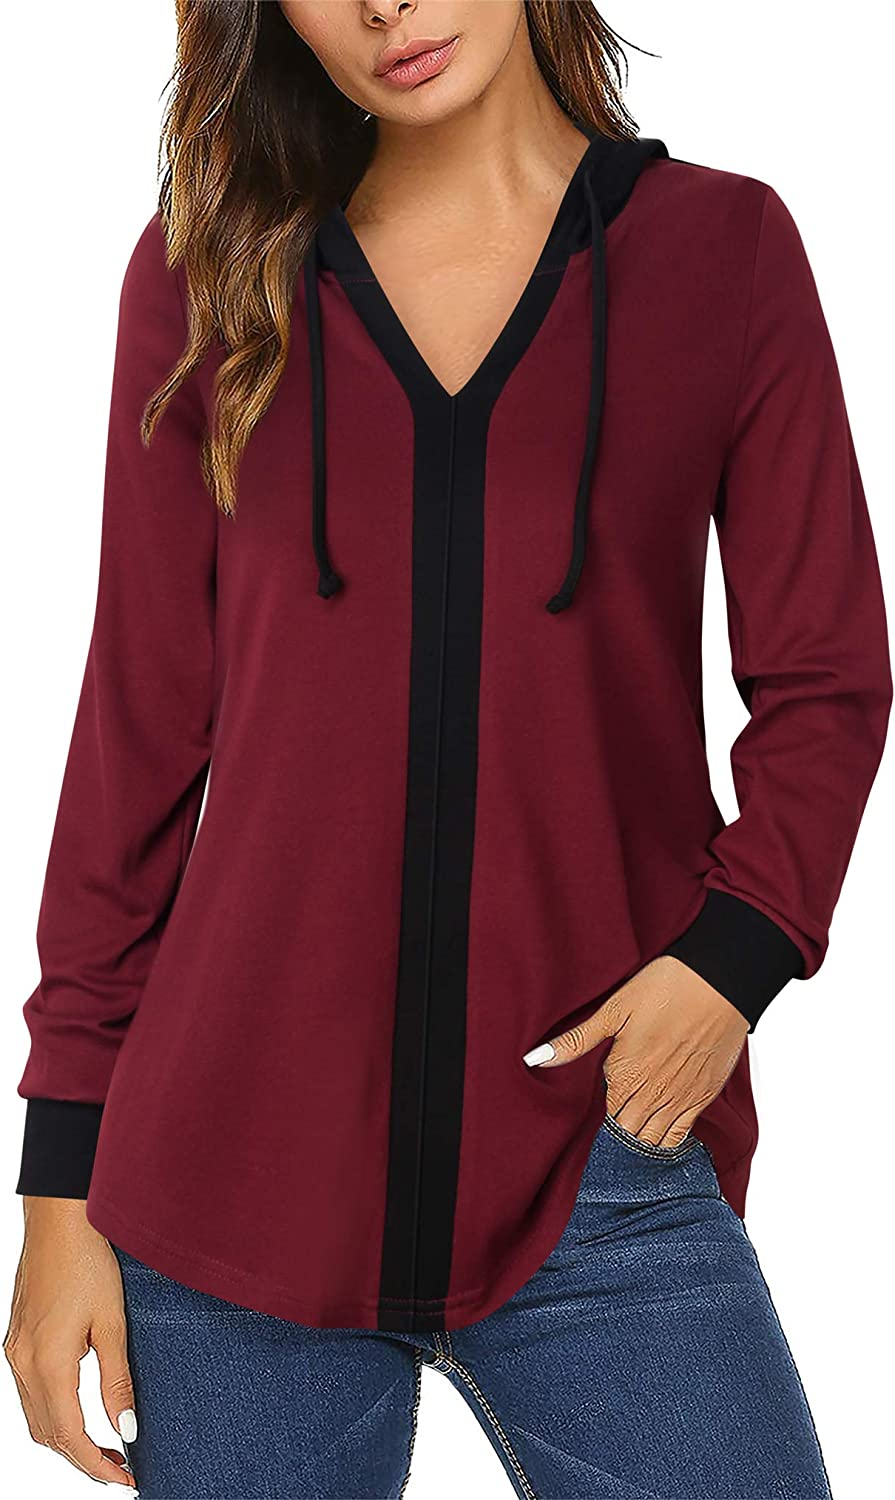 Lotusmile Women's Color Block Hooded Tunic Tops Casual Lightweight Hoody Shirts